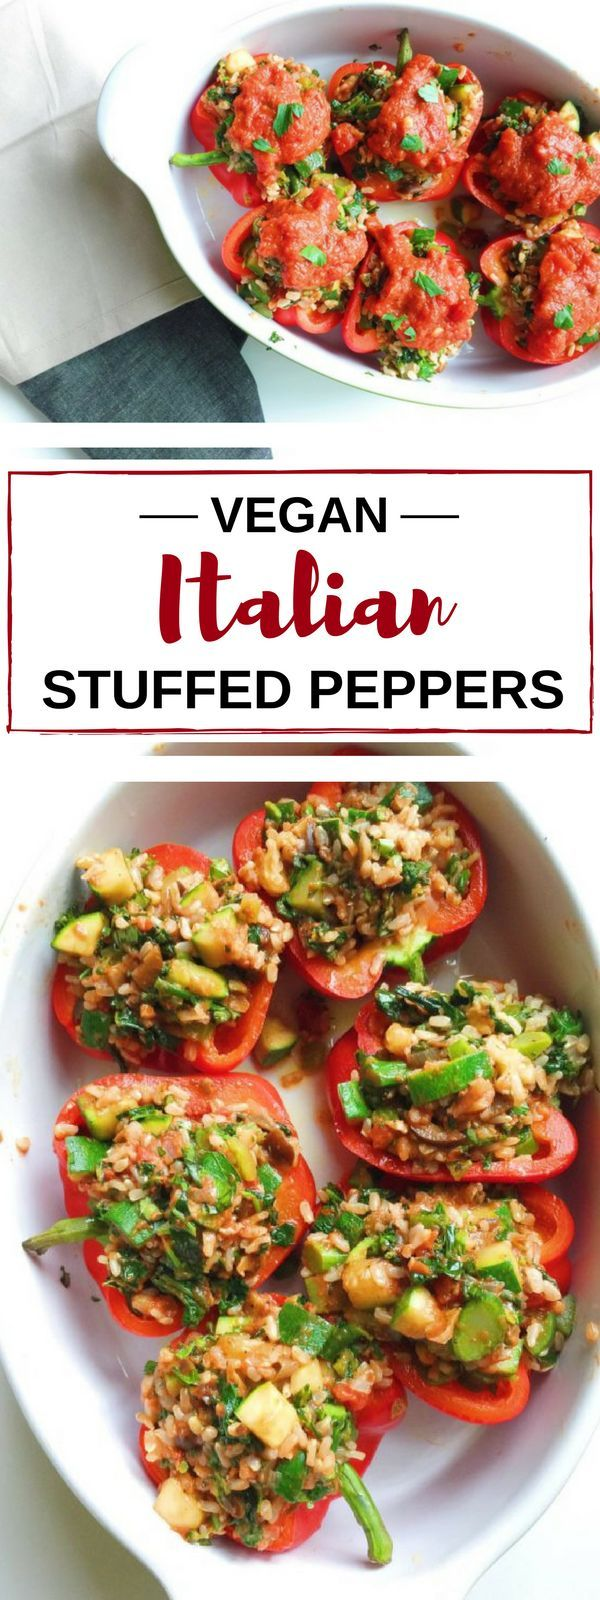 Italian stuffed peppers get a vegan twist. These peppers use a homemade, yet simple, marinara sauce and are stuffed with zucchini, brown rice, walnuts, olives, and broccolini.